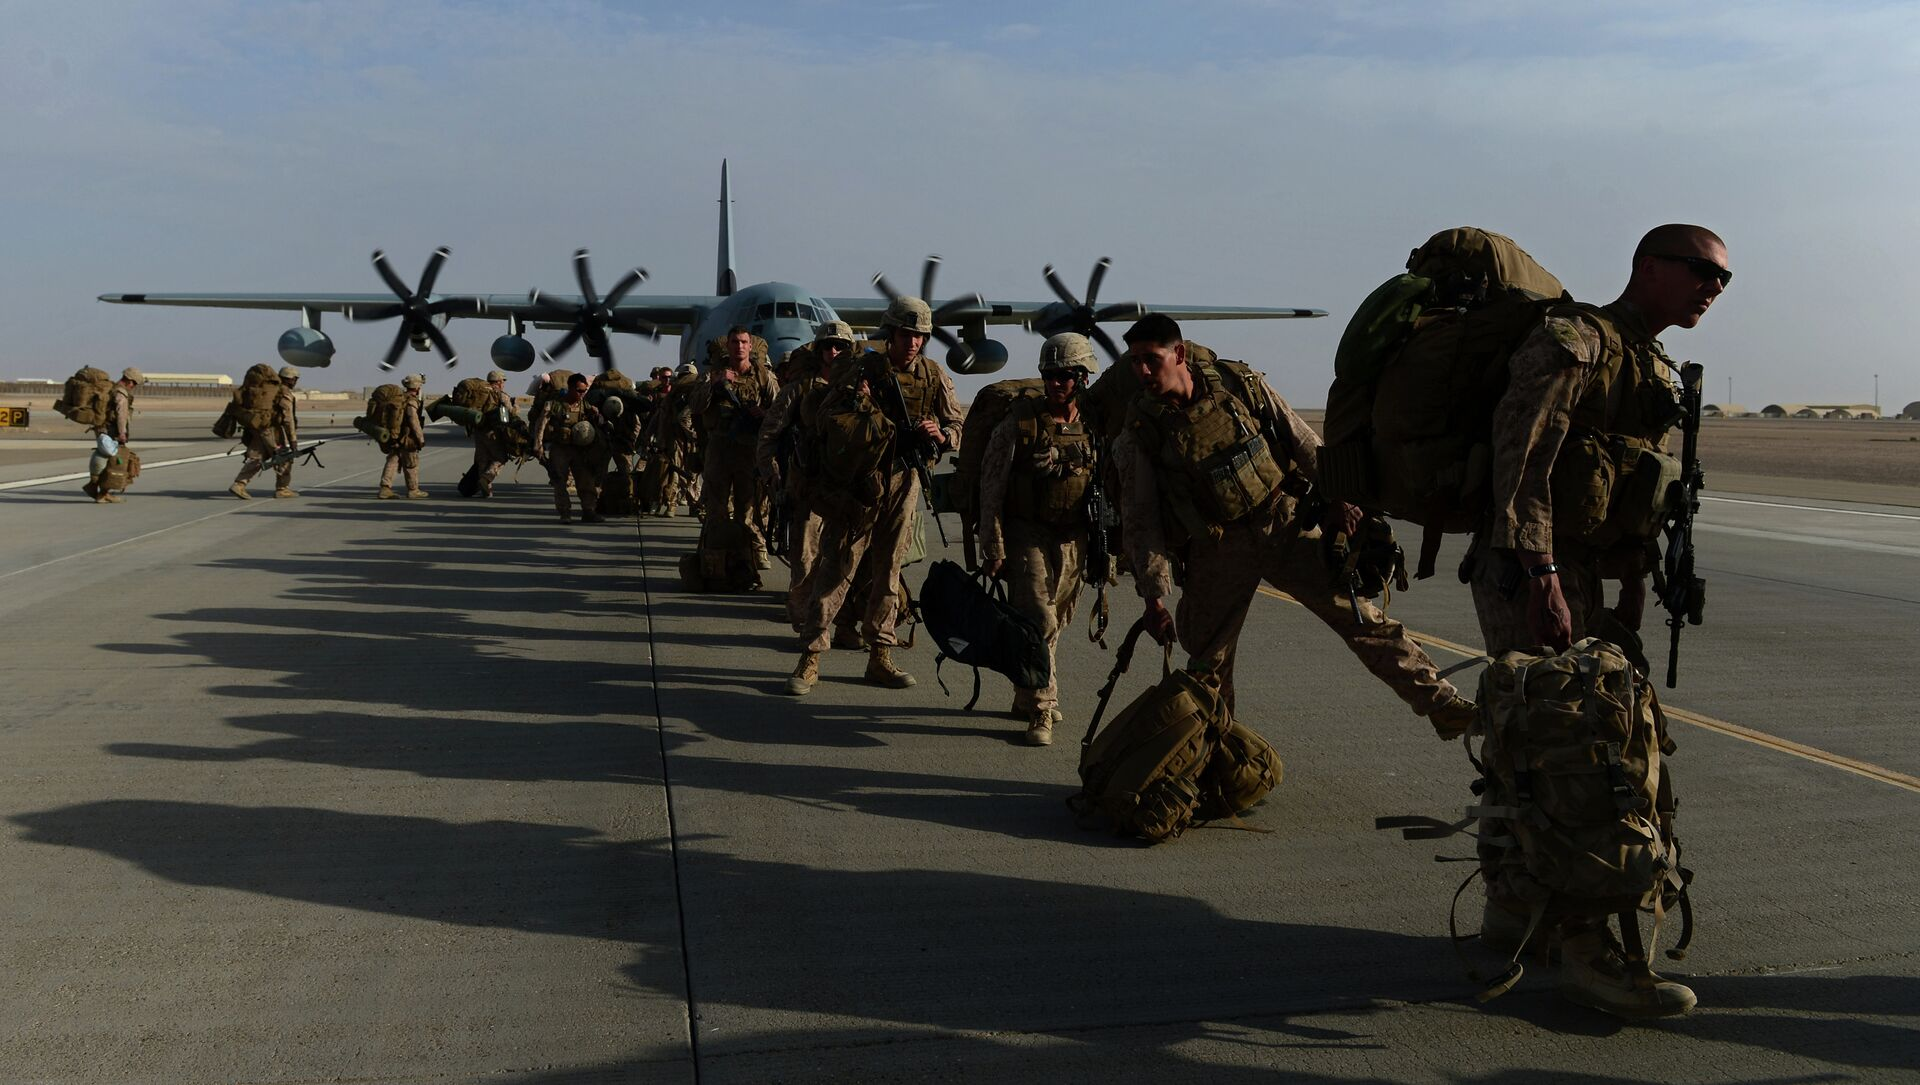 US Marines walk in line after arriving in Kandahar on October 27, 2014, as British and US forces withdraw from the Camp Bastion-Leatherneck complex in Helmand province - Sputnik Italia, 1920, 14.05.2021